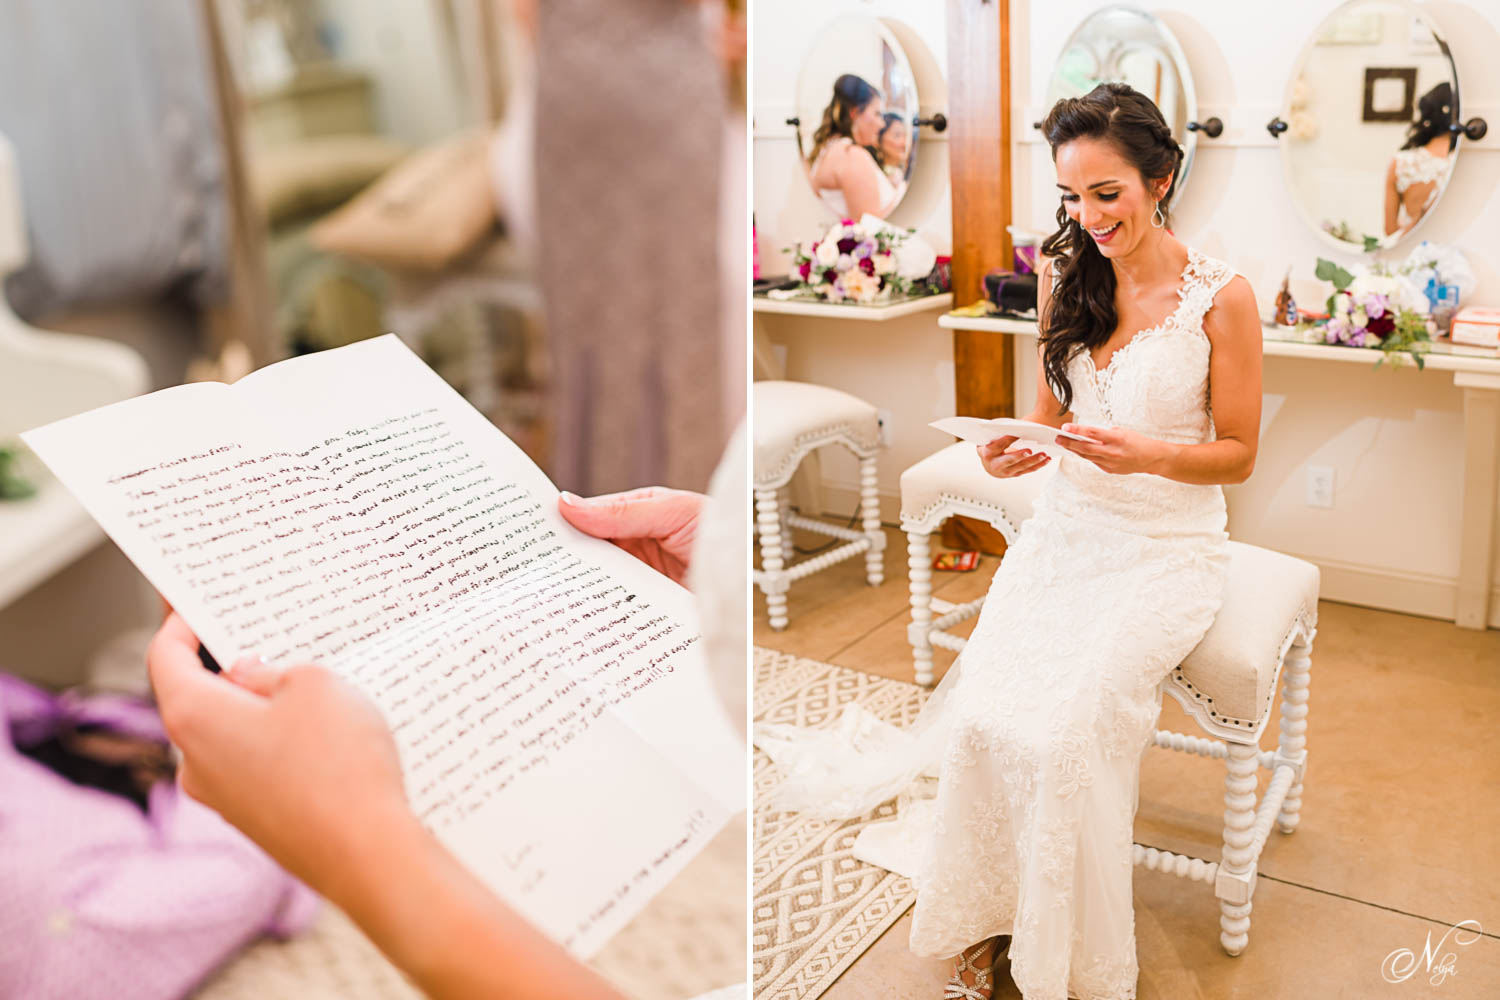 bride reading letter from groom in bridal room at hiwassee river weddings